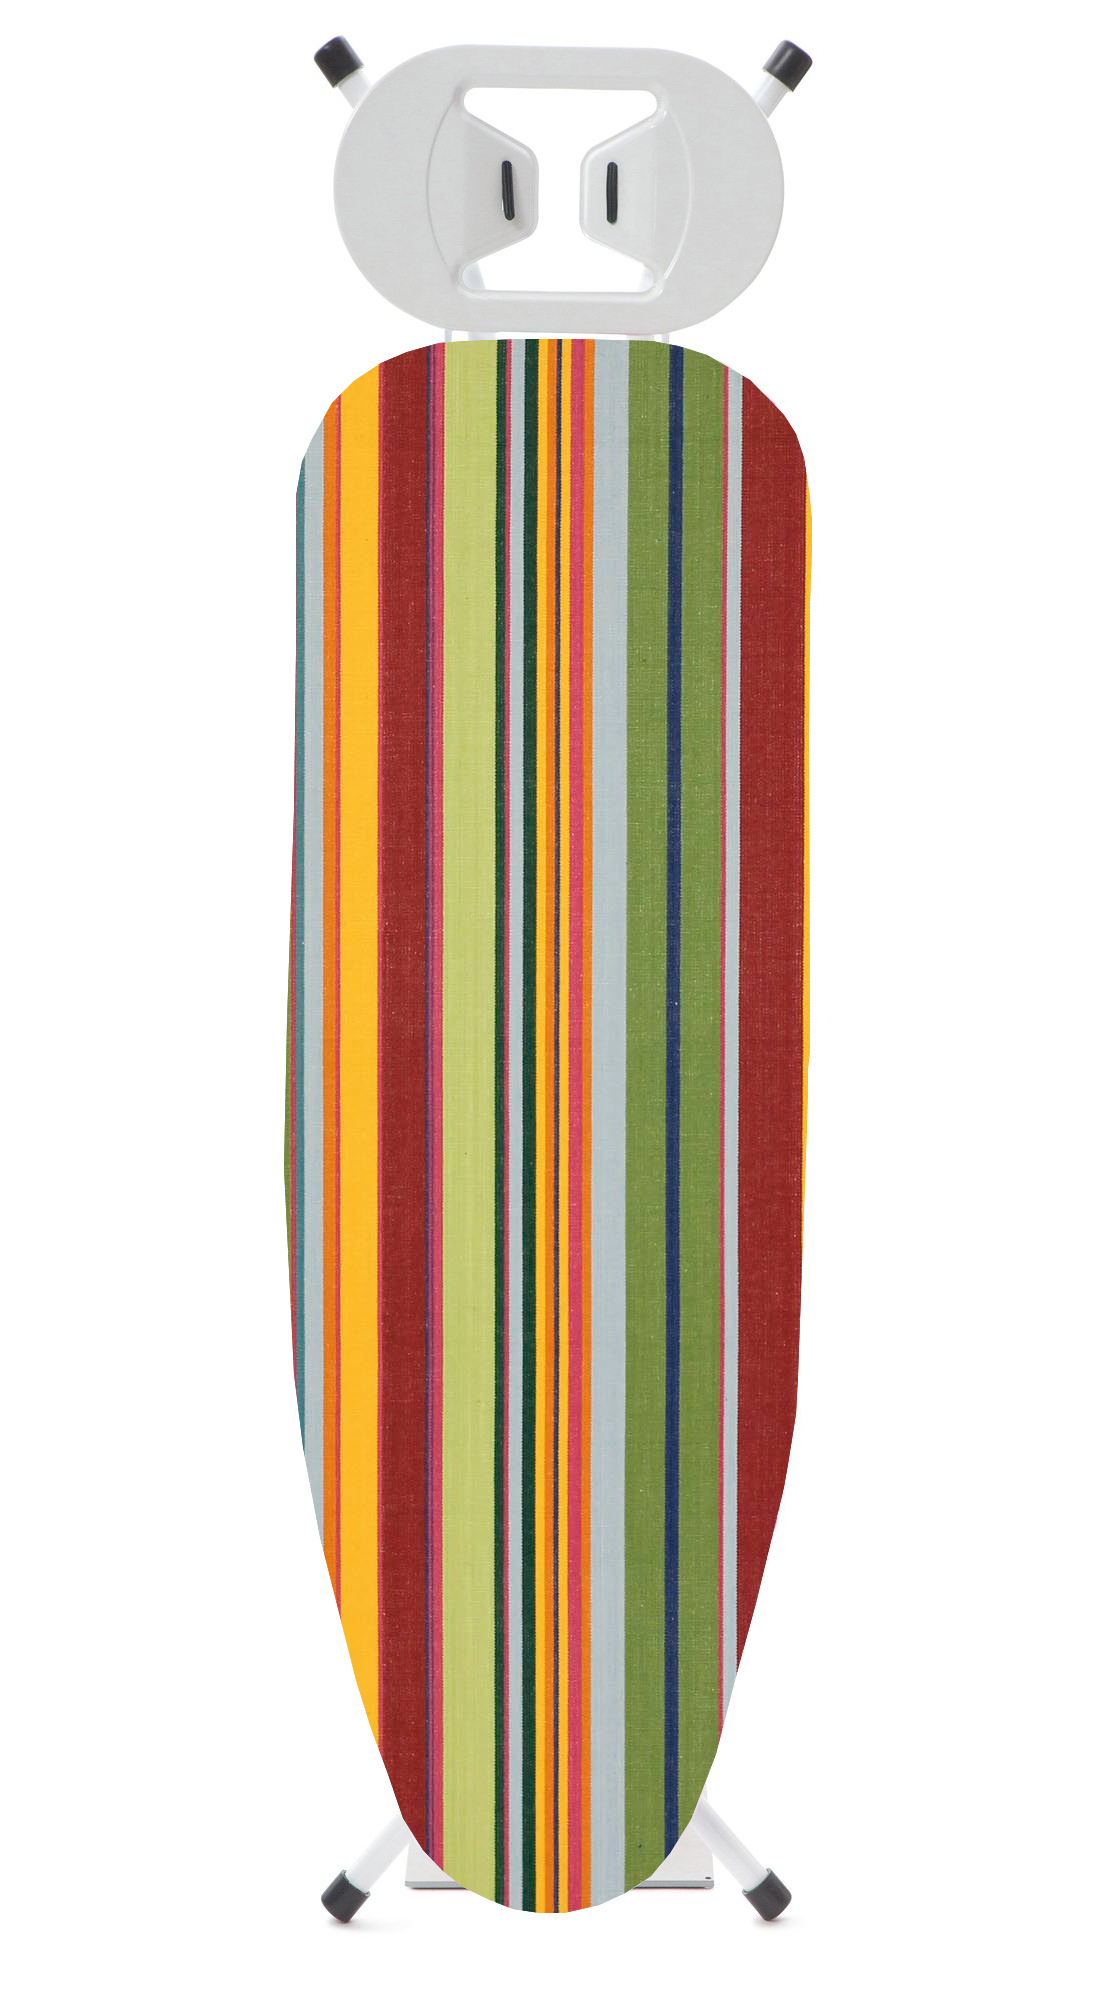 Bottle Green Striped Ironing Board Covers | Deckchair Stripe Covers for Ironing Boards  Bowling Stripes